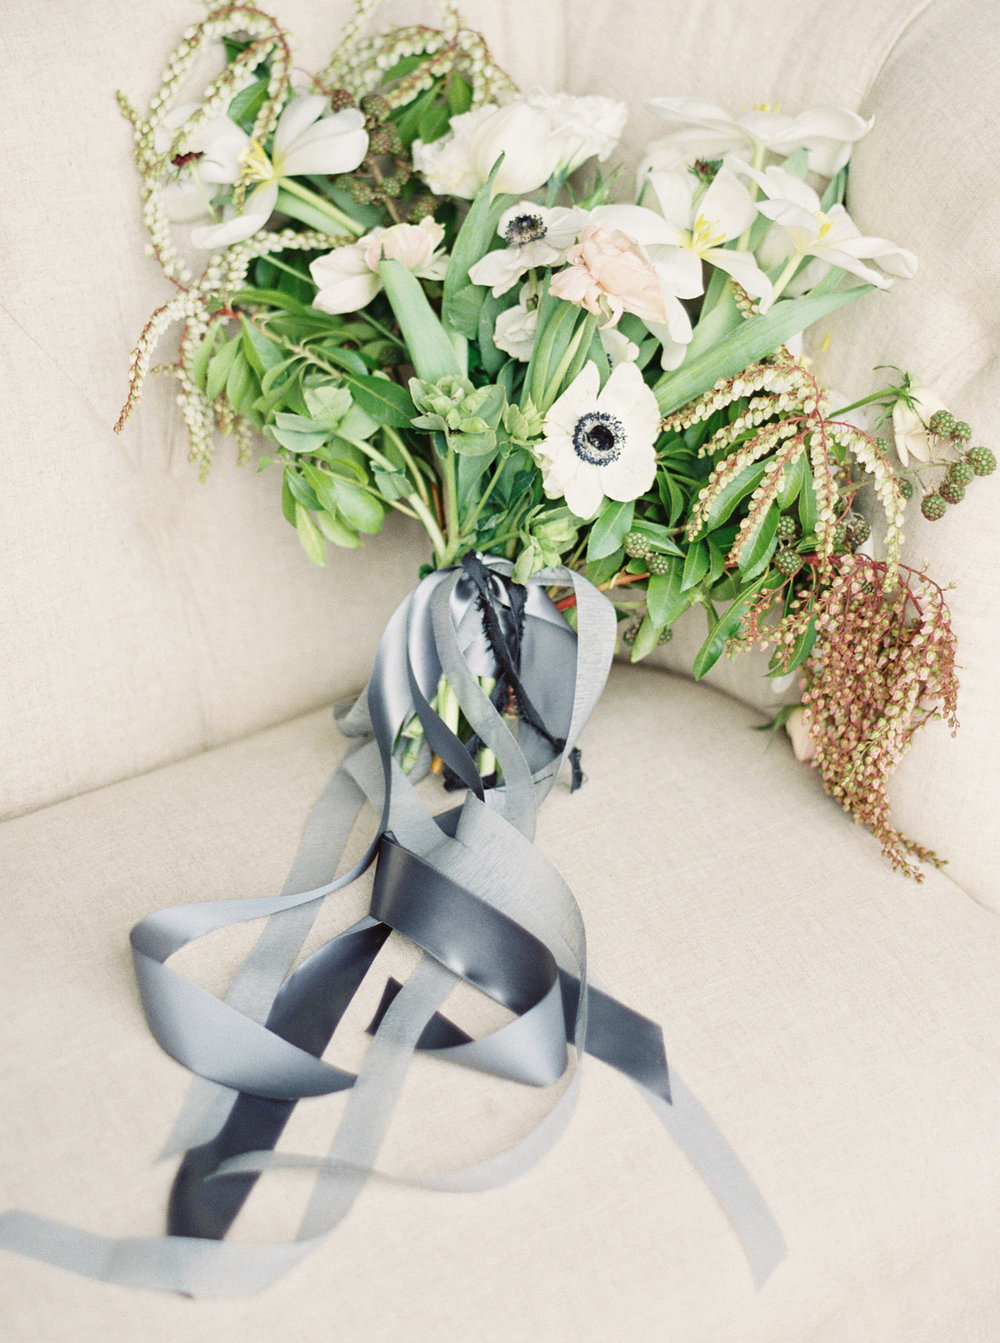 Photography: Simply Sarah Photography | Planning & Styling: Bash Bozeman | Calligraphy: Spurlé Gul Studio | Flowers: Labellum